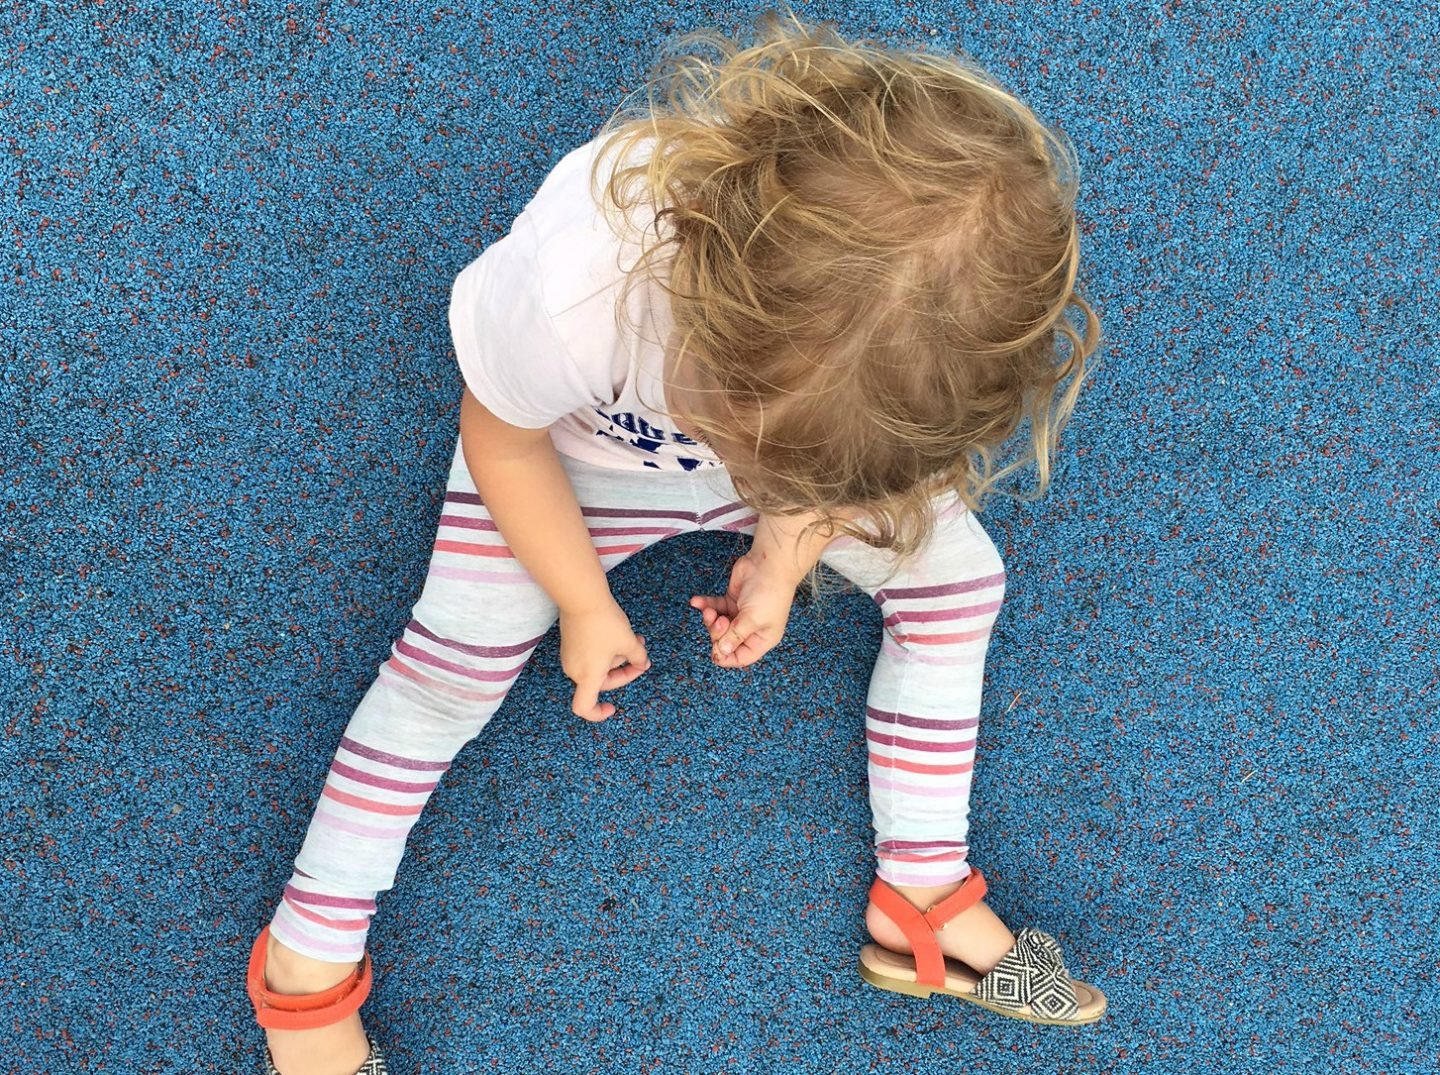 An open letter to the park from a tried mum of two